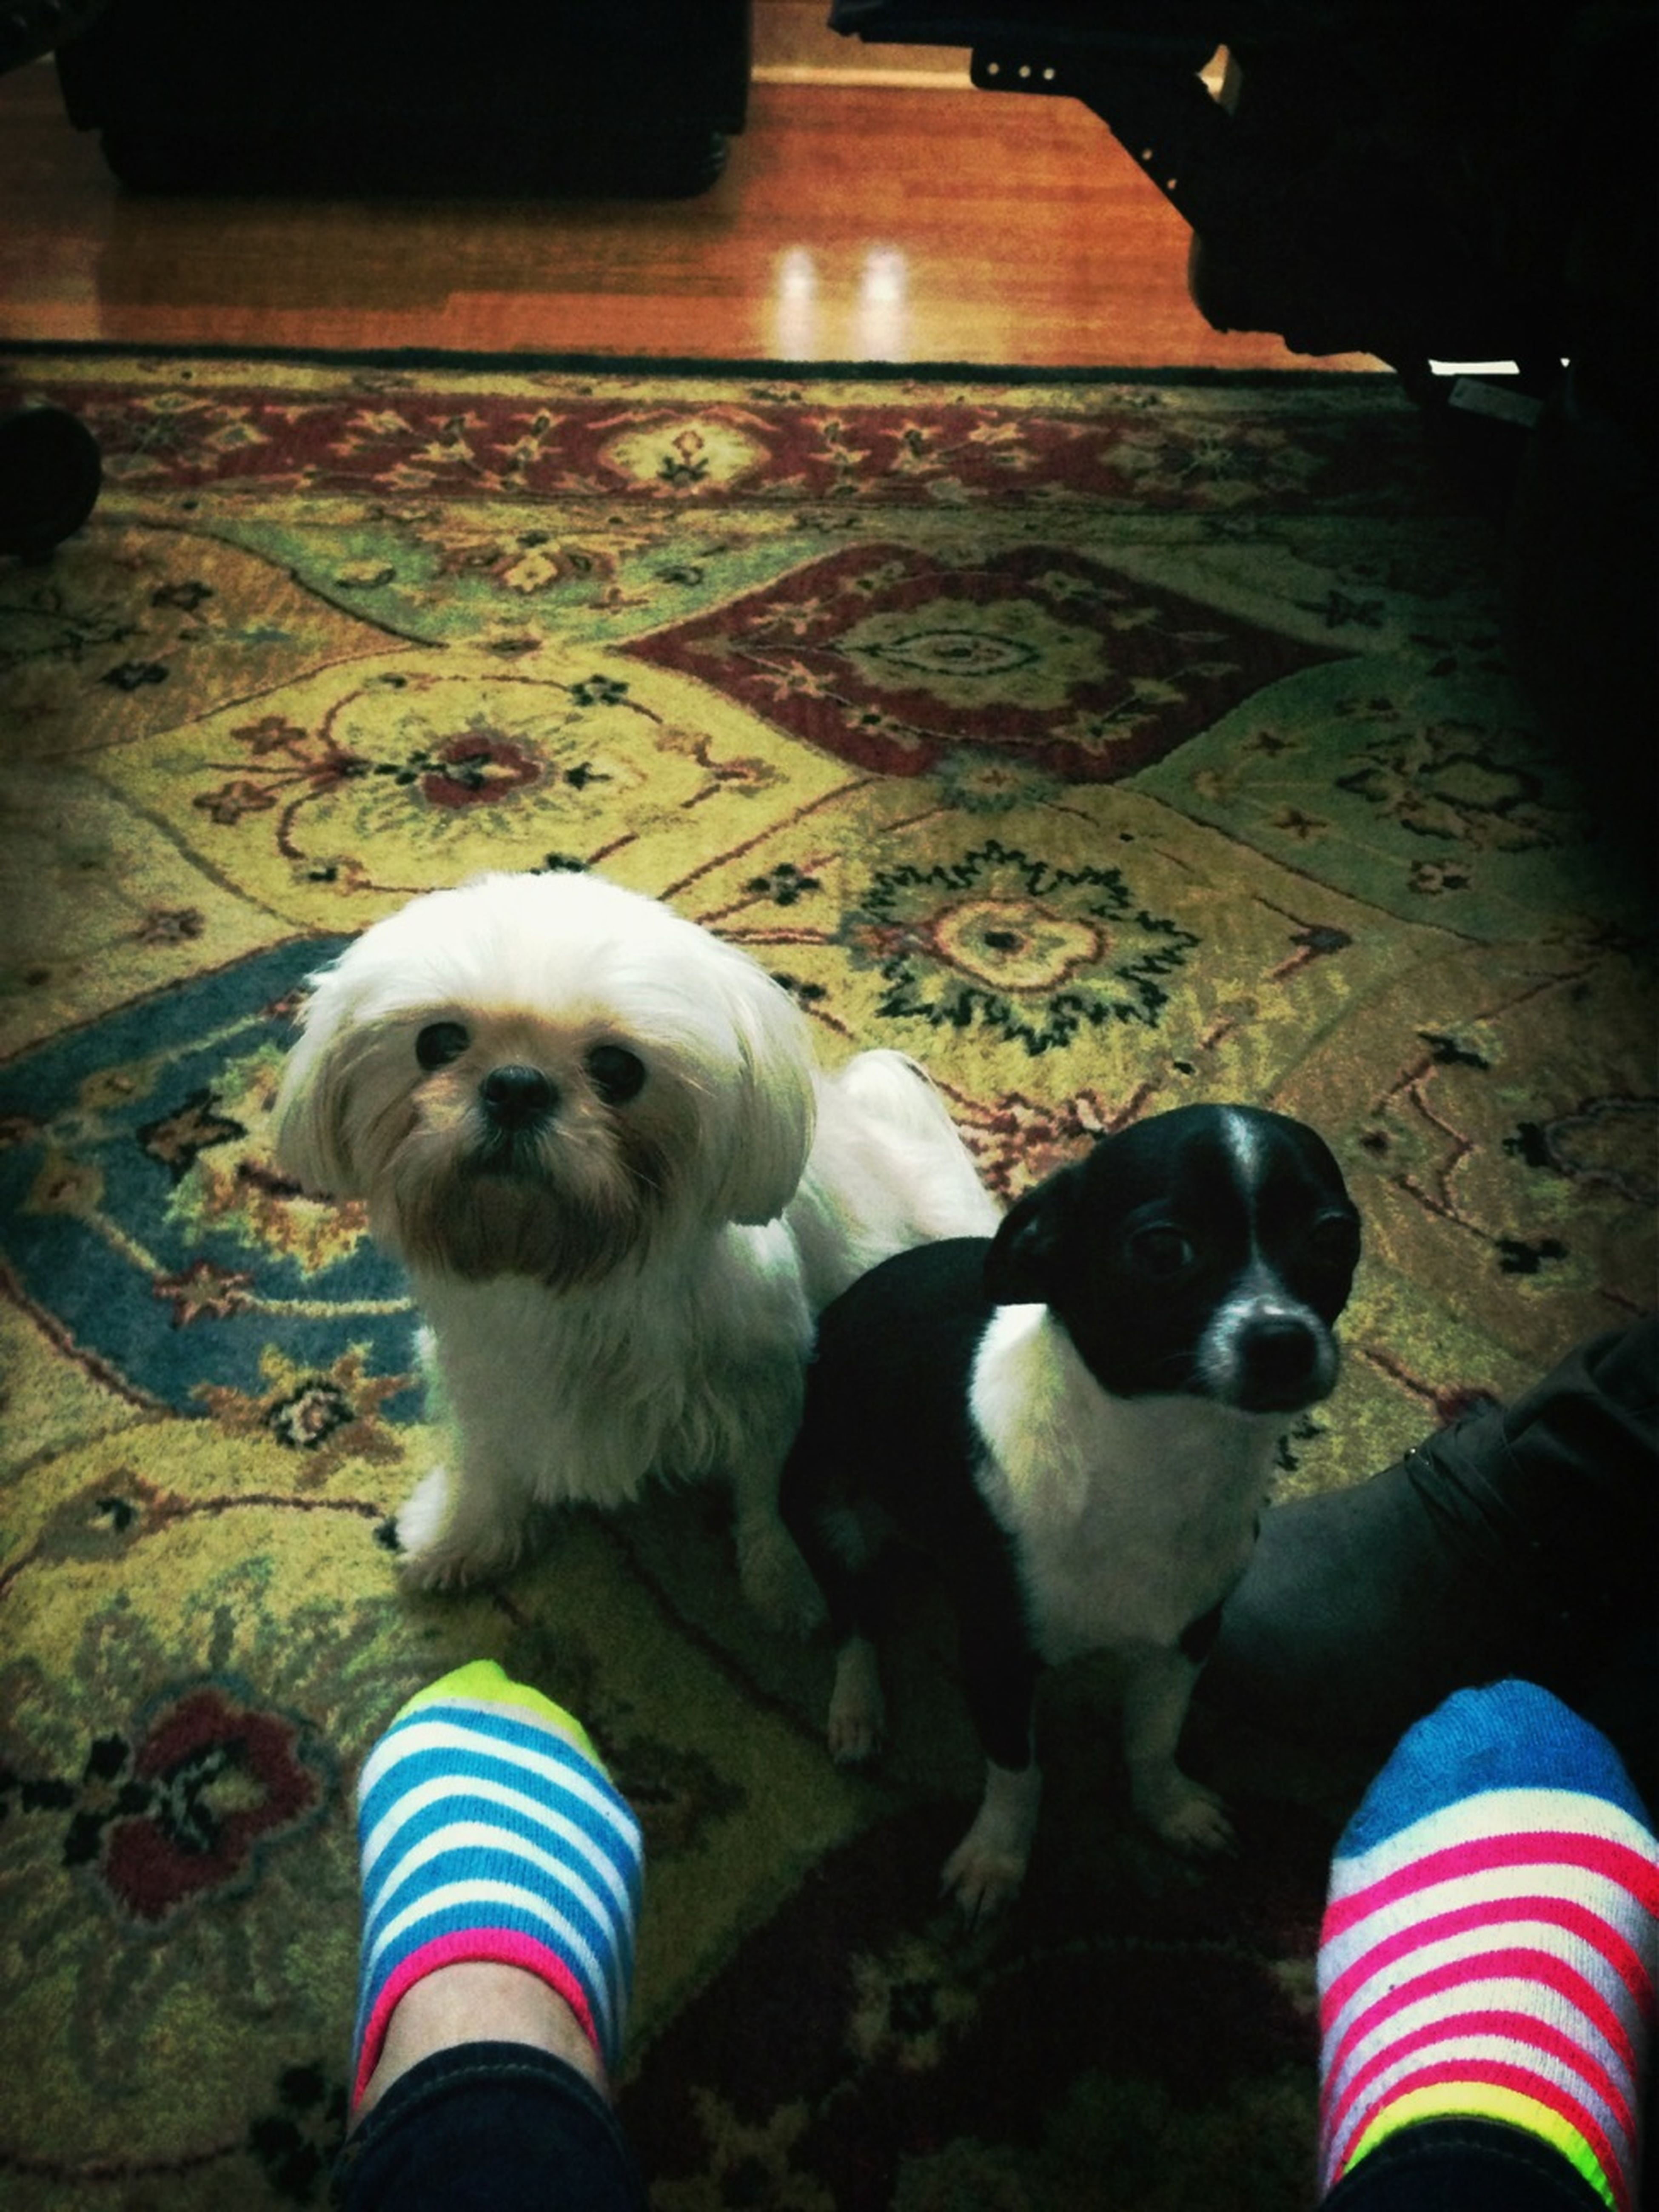 My dogs are the cutest!